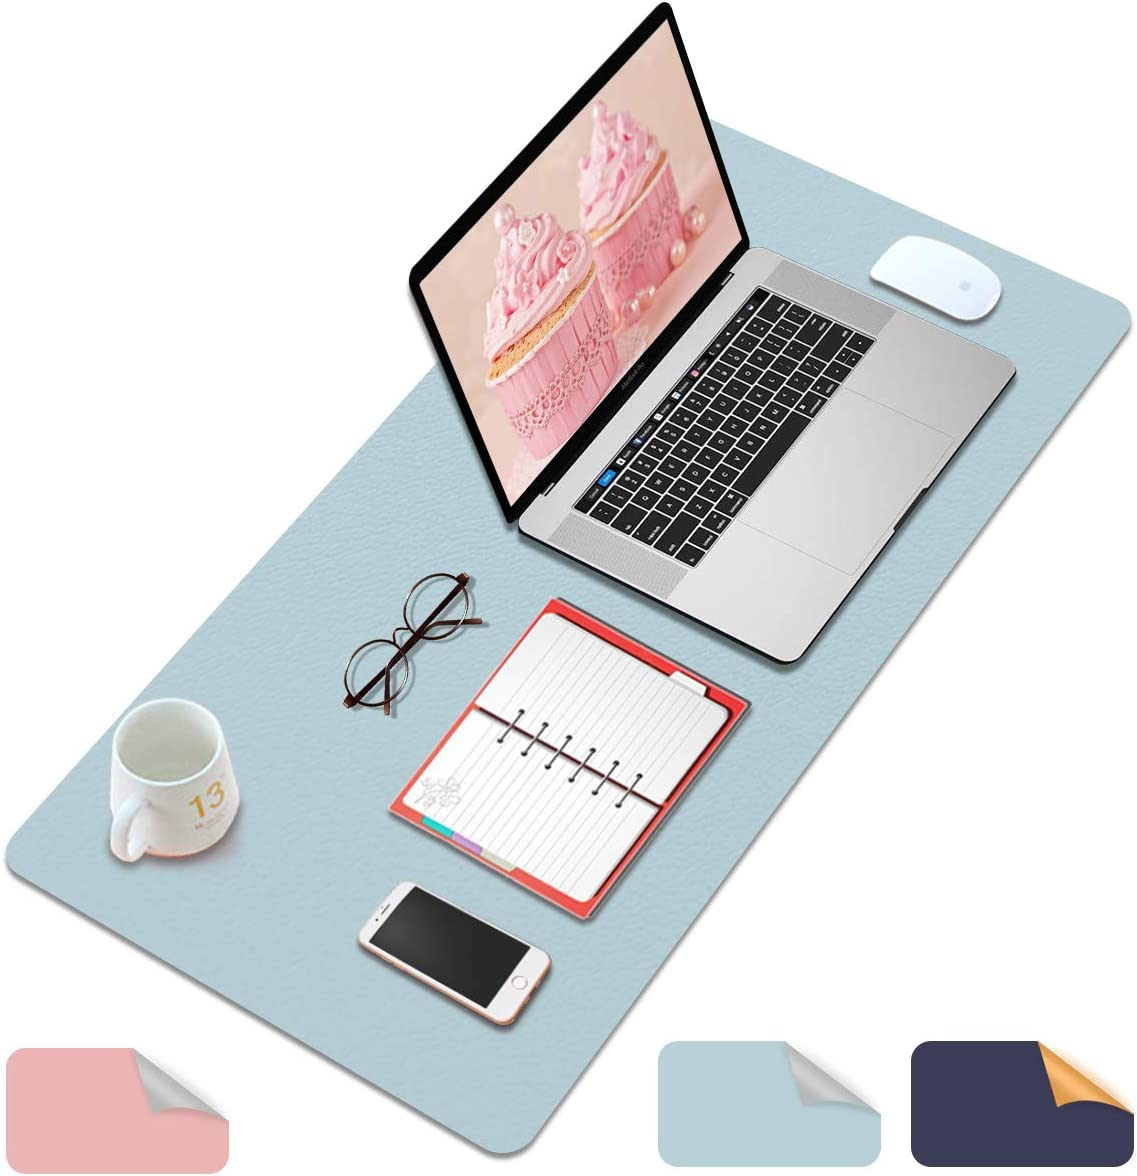 "Desk Pad, Office Desk Mat, PVC Leather Desk Blotter Protector, Laptop Desk Mouse Pad, Waterproof Writing Pad Large Desk Cover for Office and Home, Dual-Sided Use Light Blue& Silver 31.5""x15.7"""